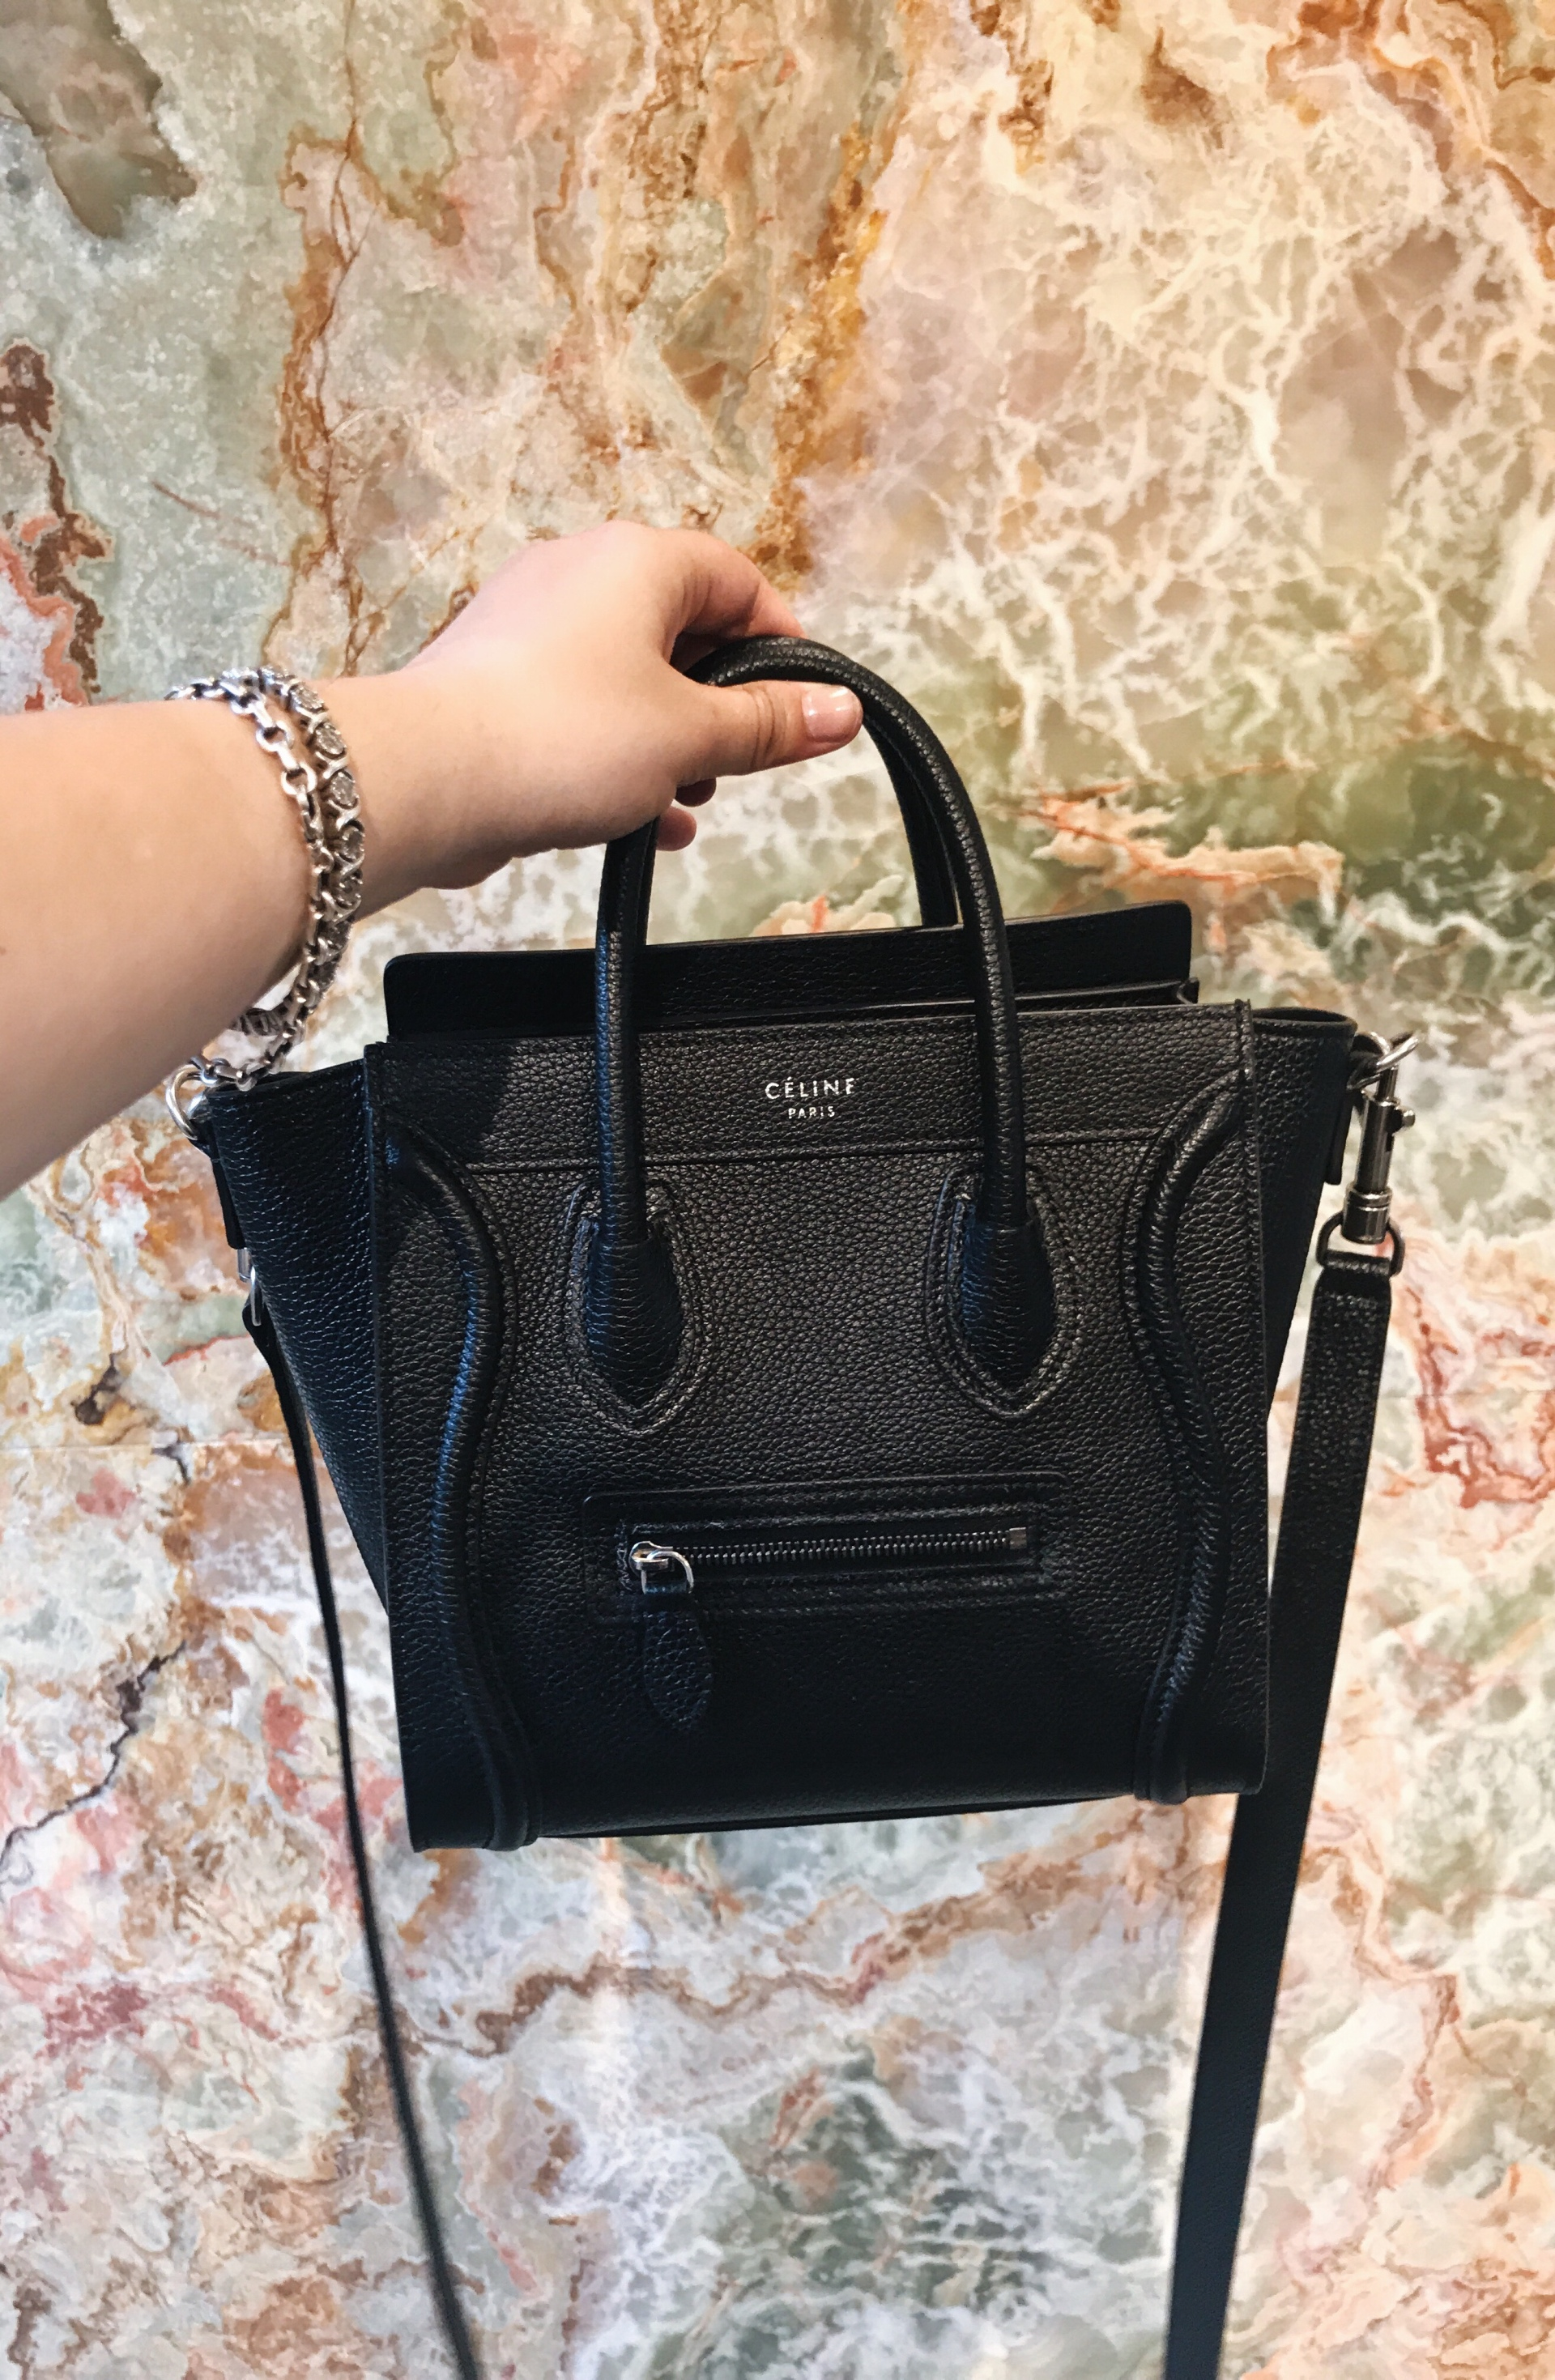 Celine Black Leather Nano Luggage Tote Bag | CoffeeAndHandbags.com